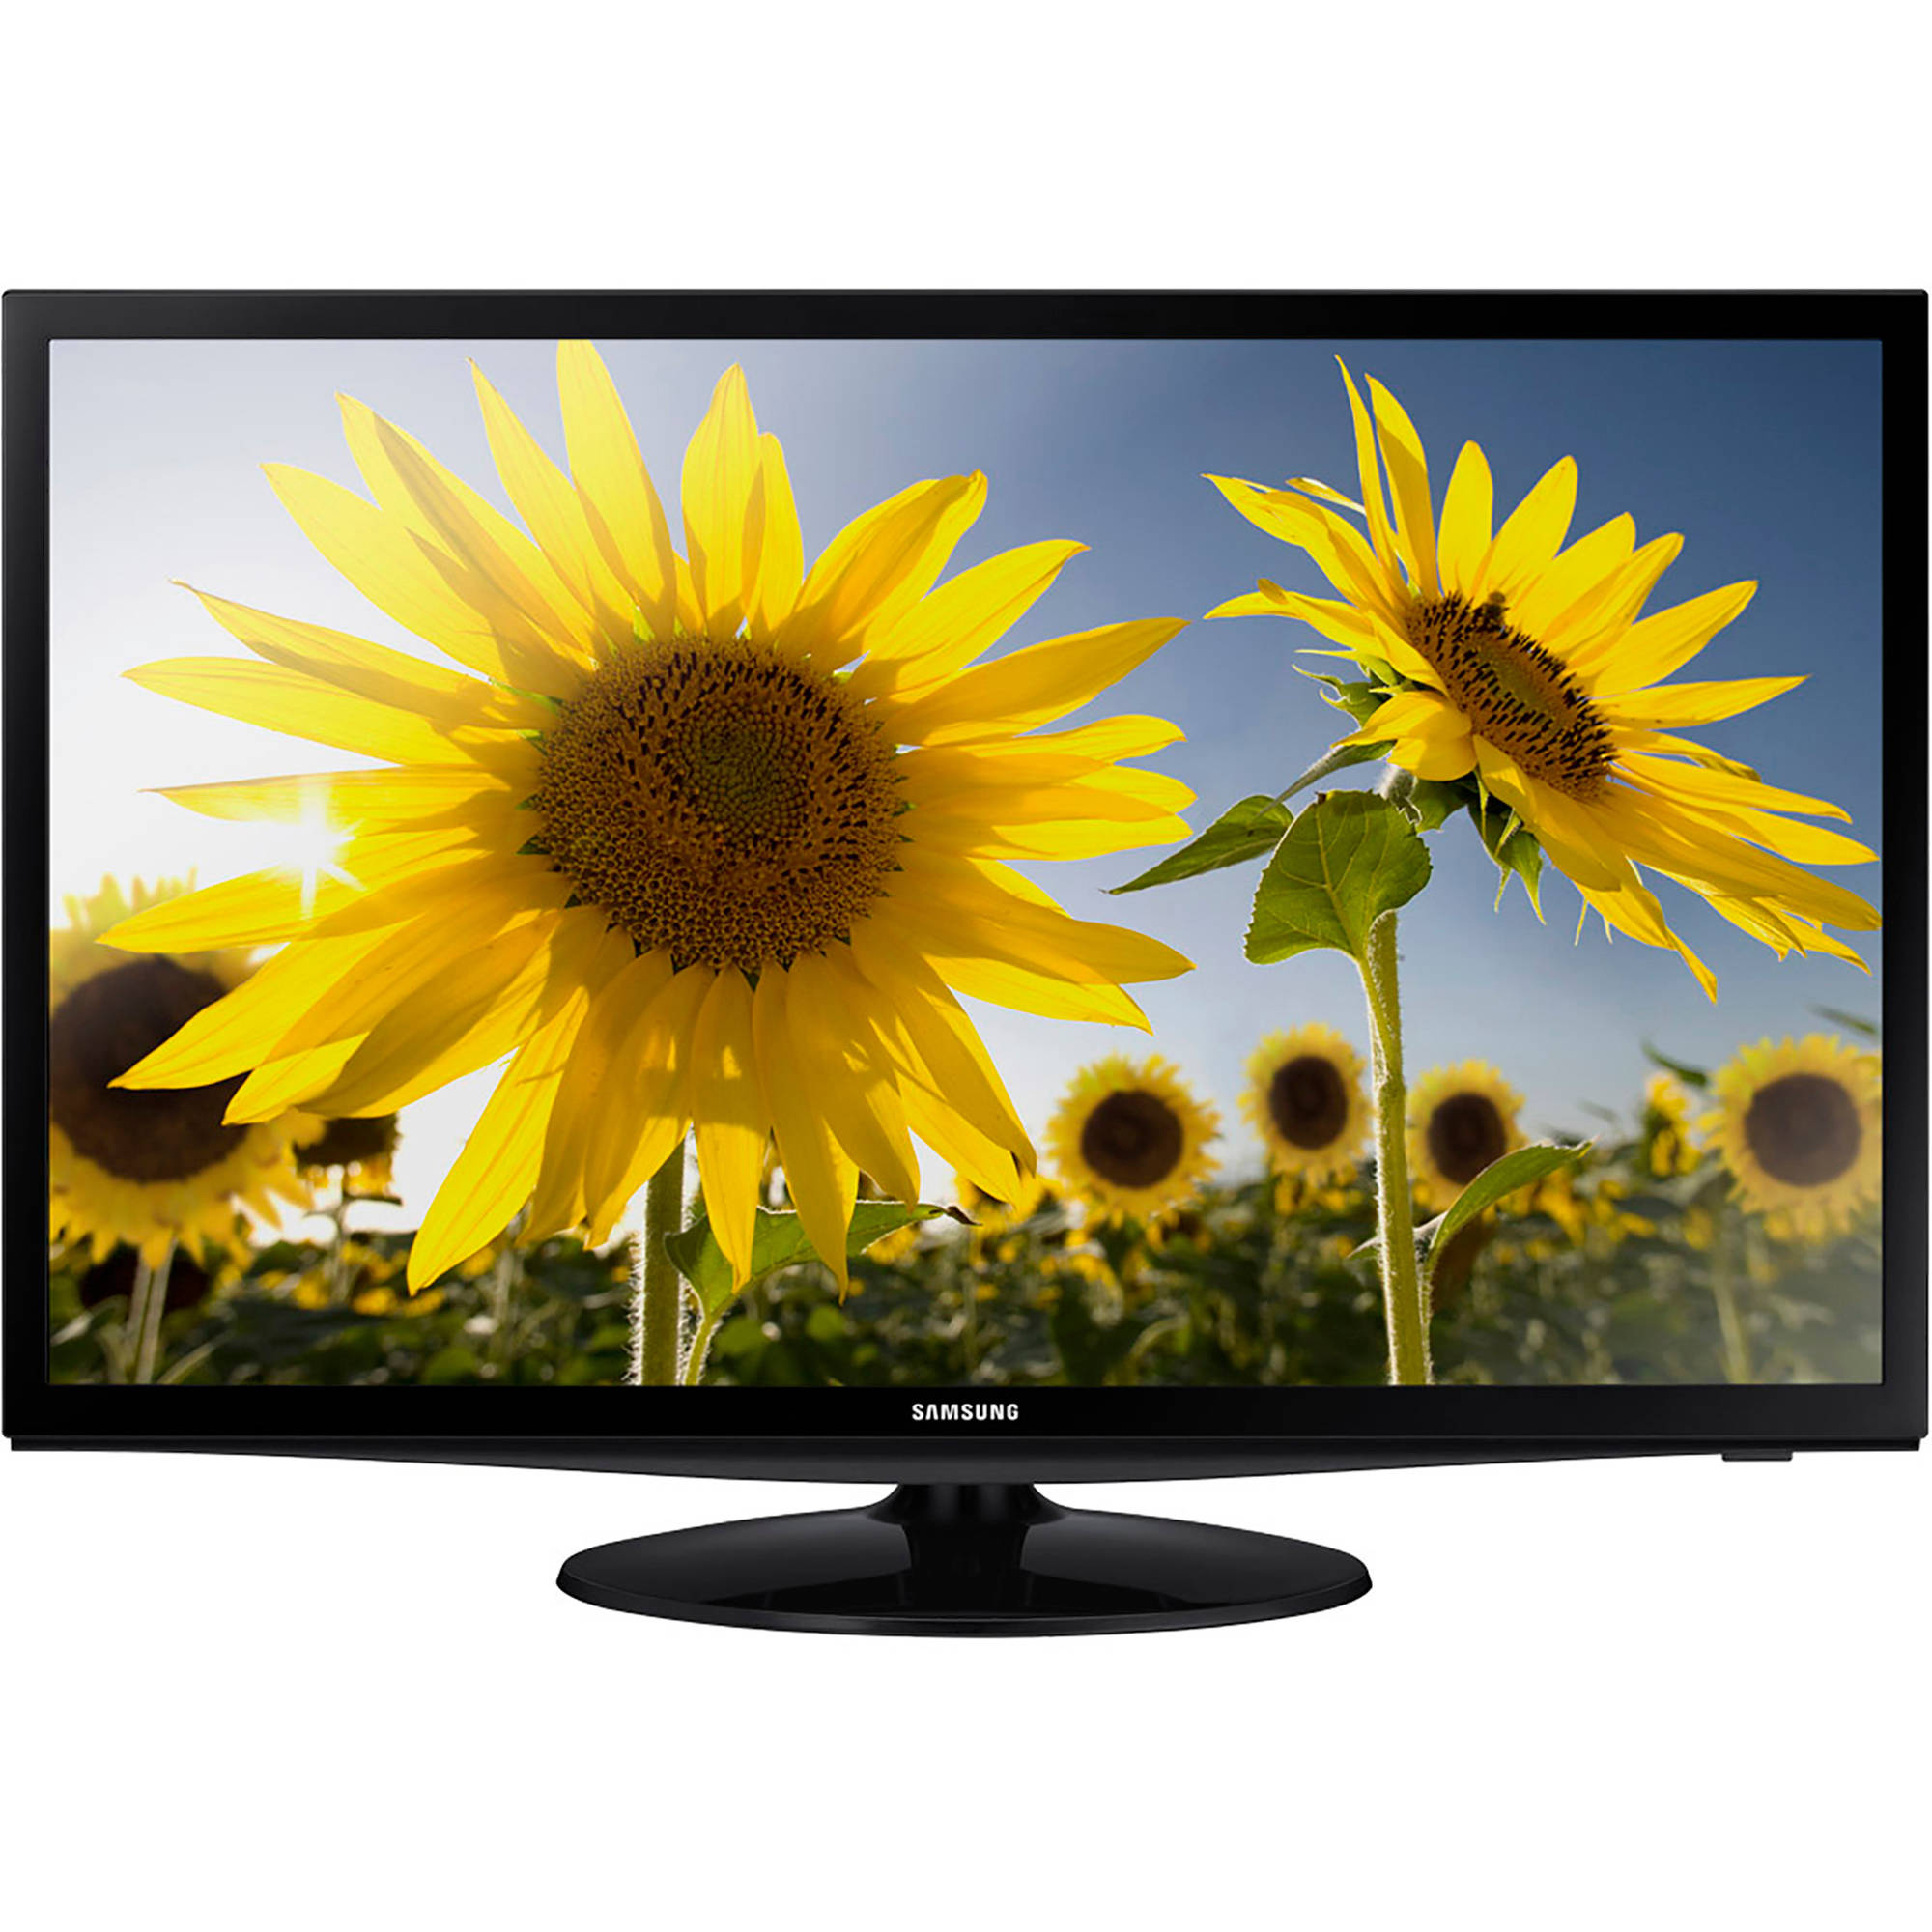 "SAMSUNG 28"" 4000 Series - HD LED TV - 720p, 120MR (Model#: UN28H4000)"